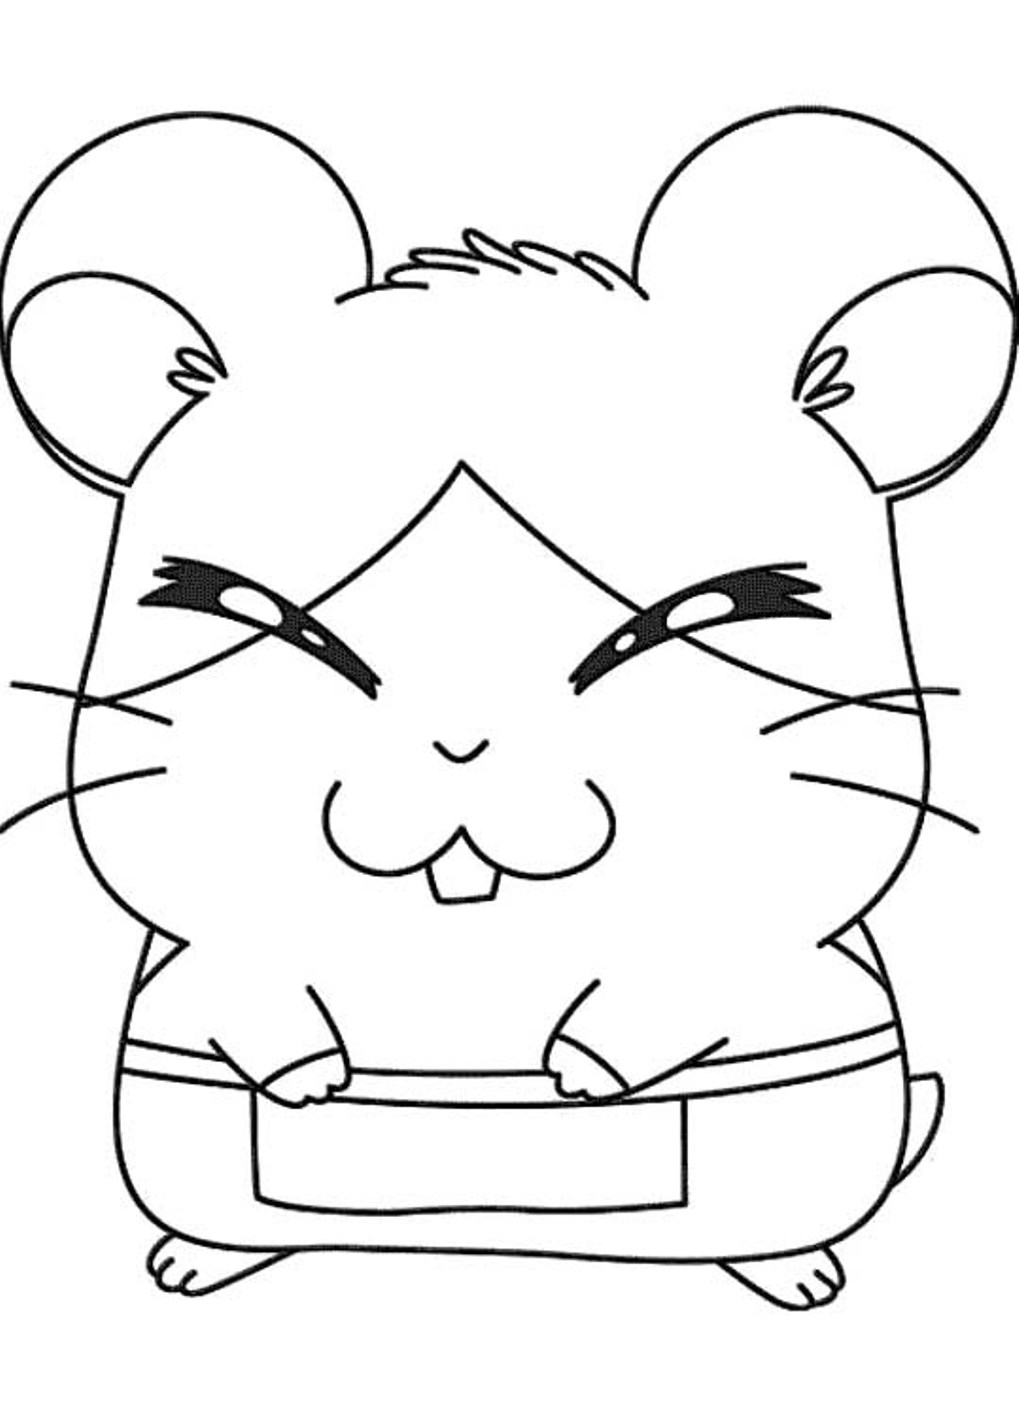 Hamtaro coloring pages to download and print for free